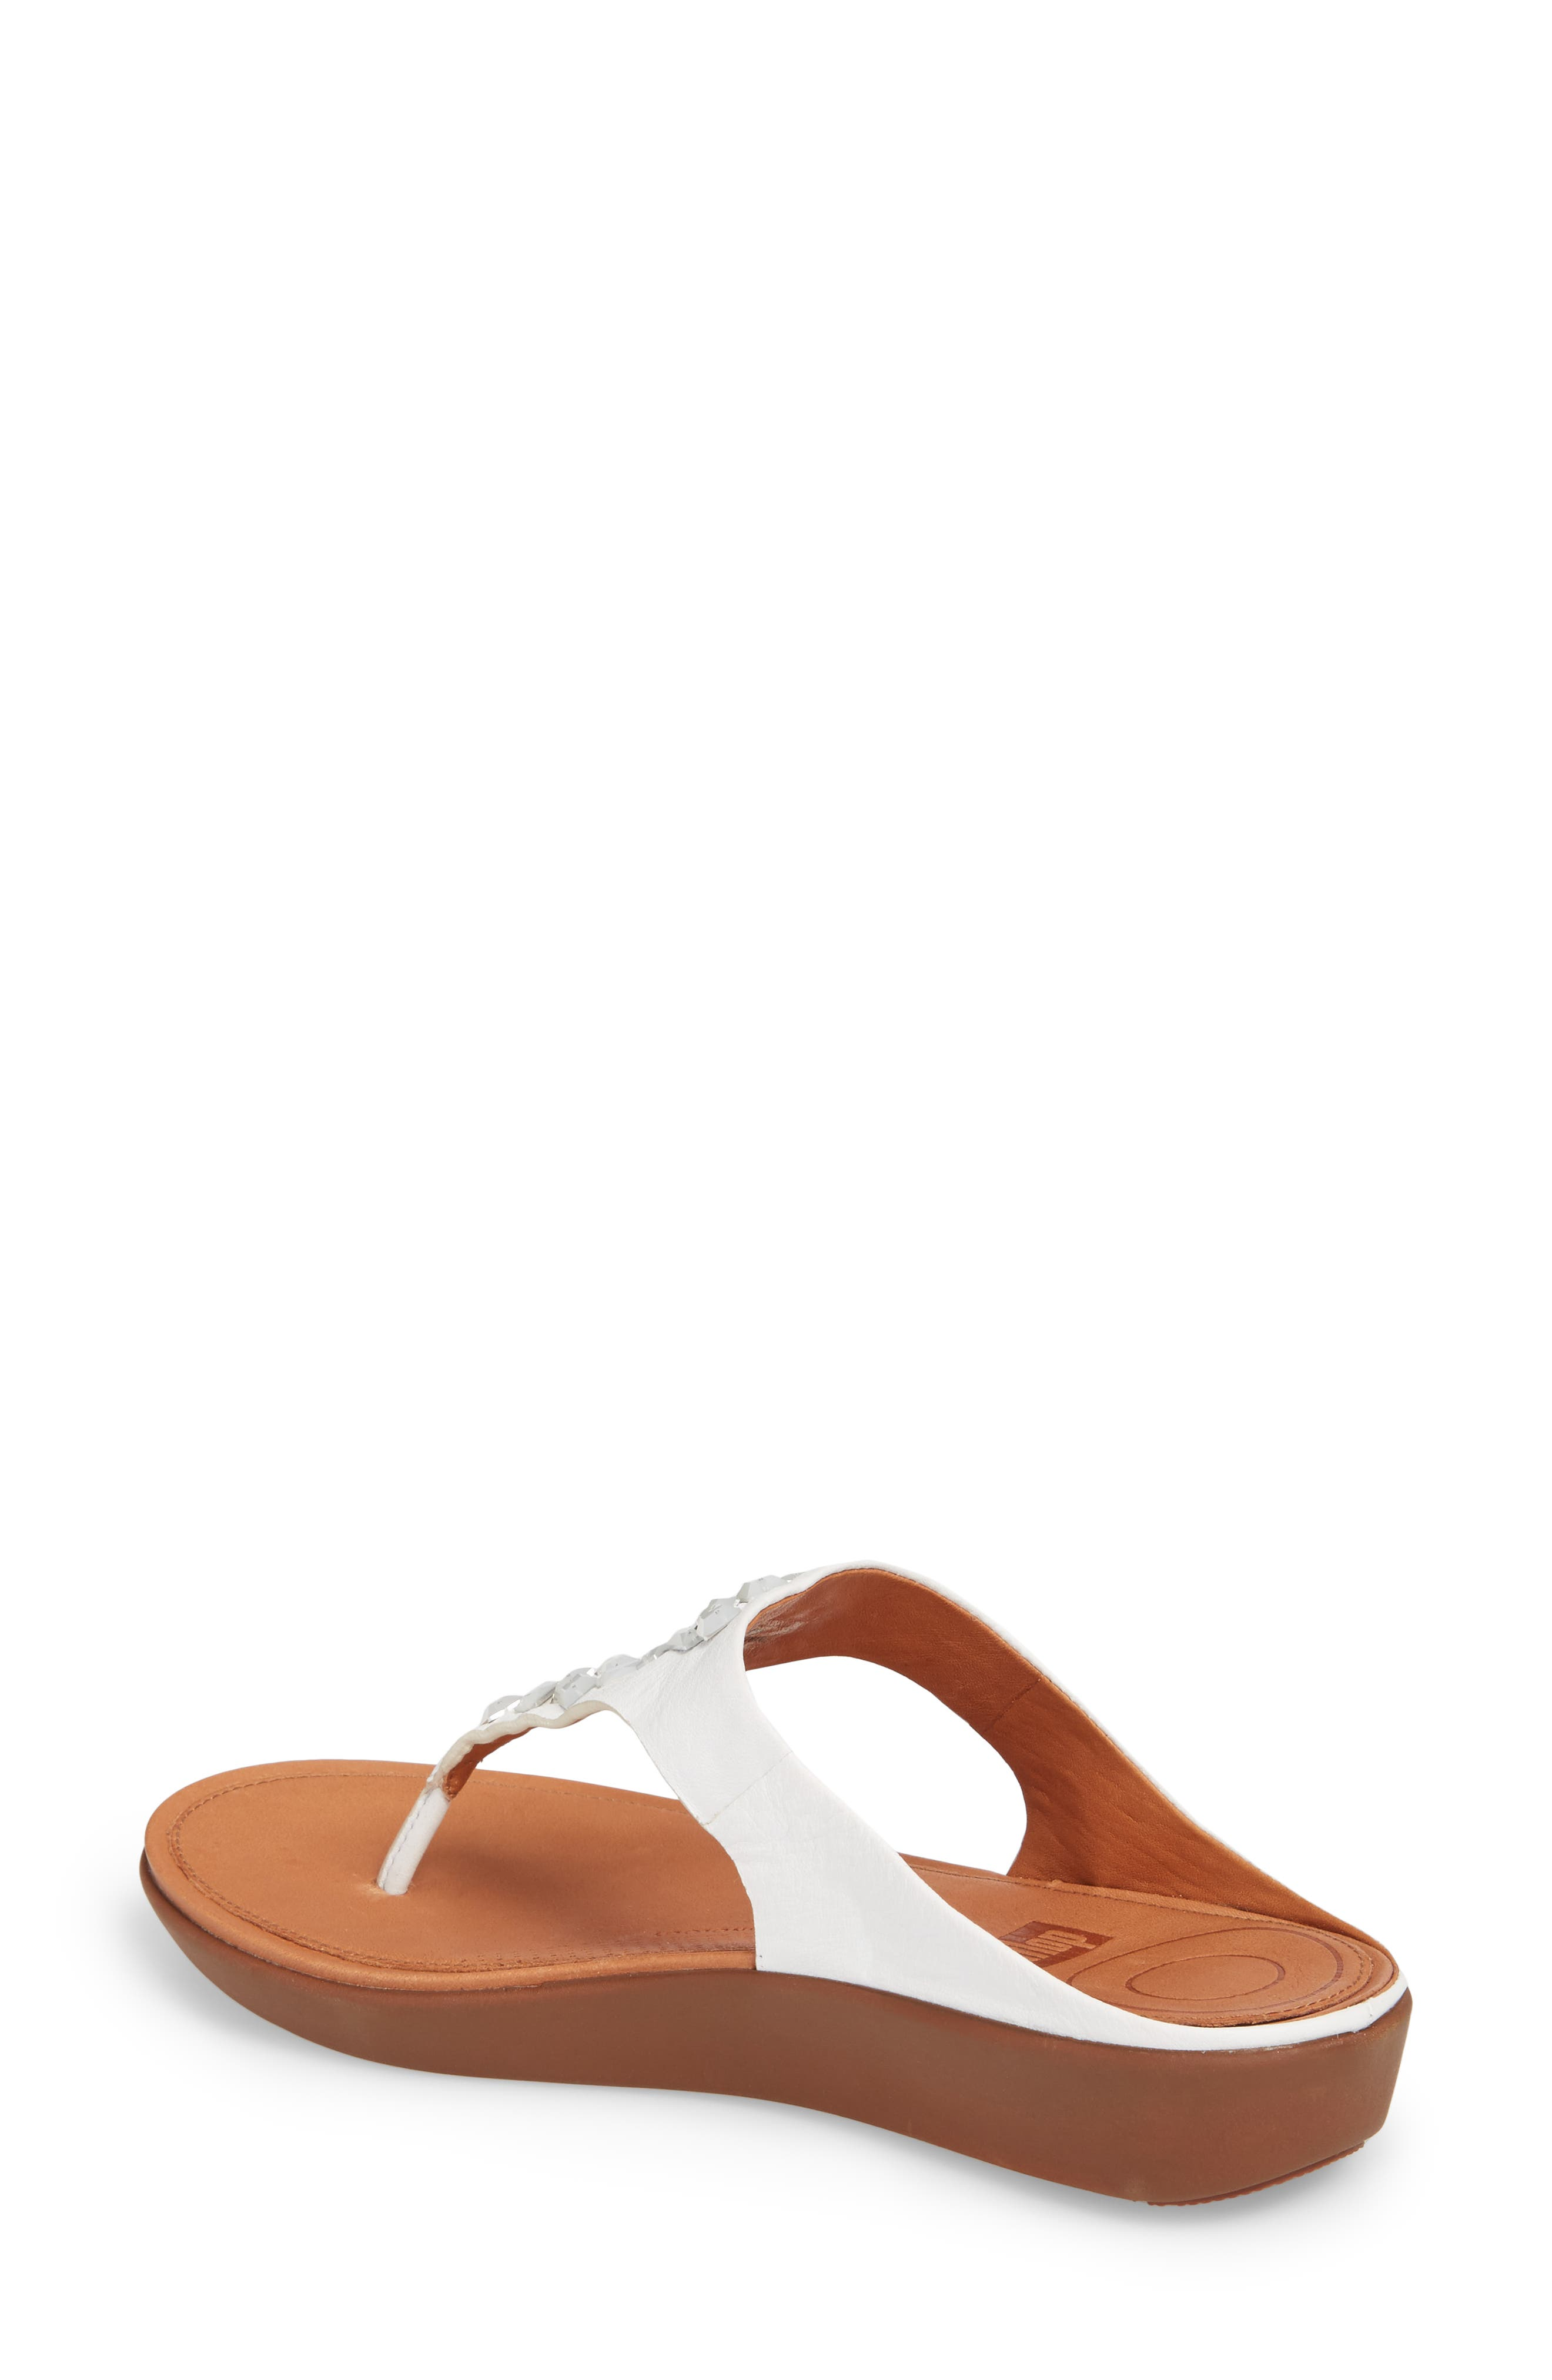 FitFlop Shoes Sandals Boots